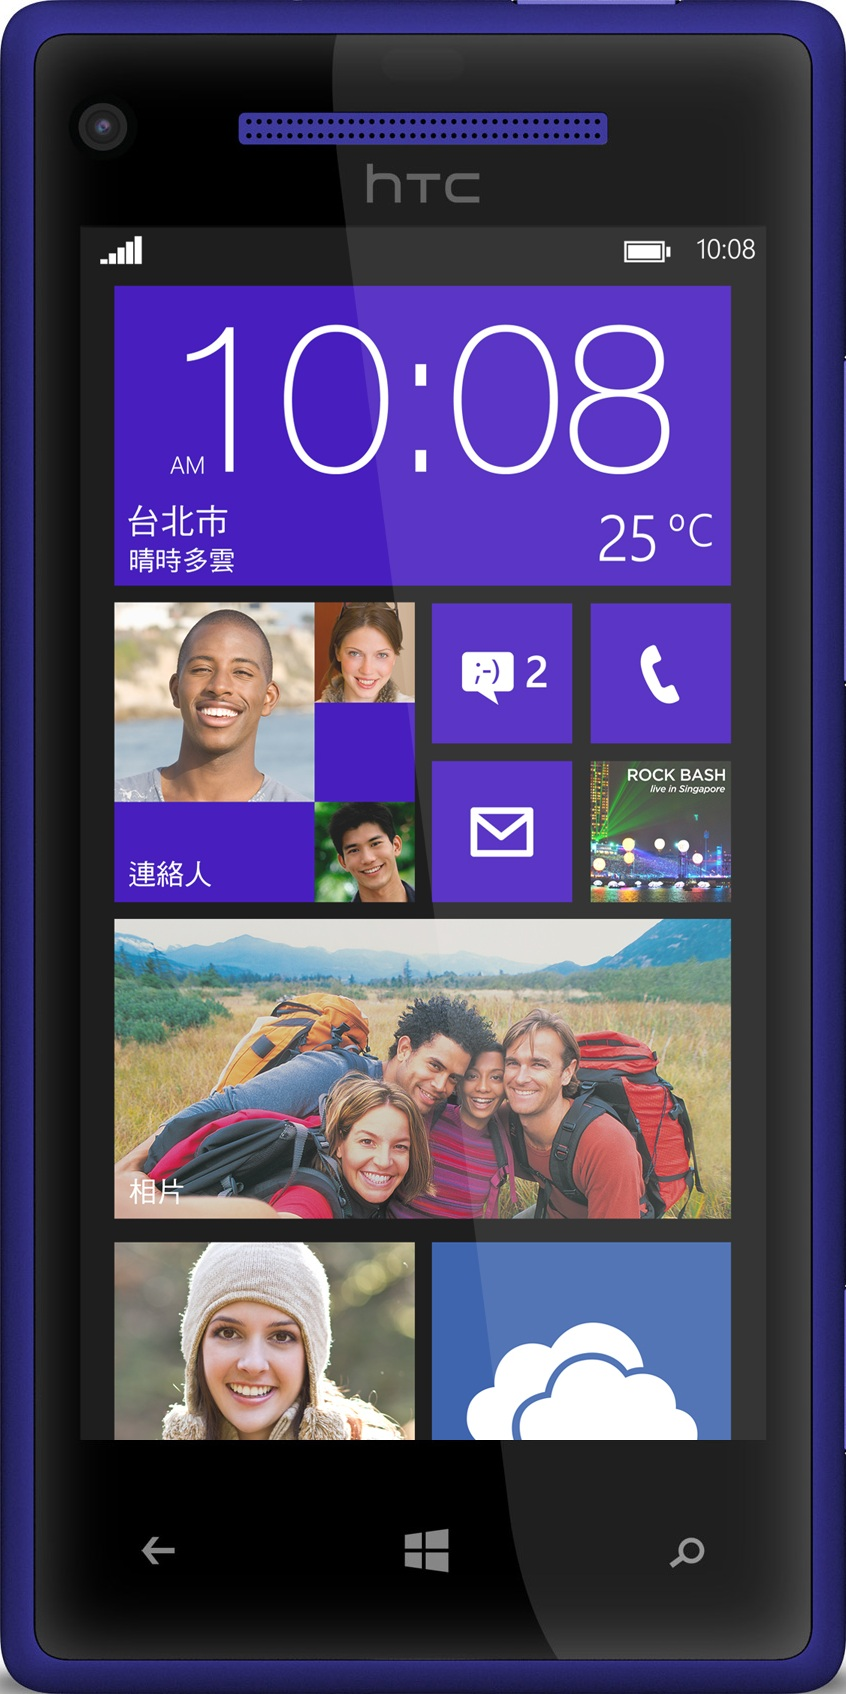 Aktwal na imahe ng laki ng  HTC Windows Phone 8x .